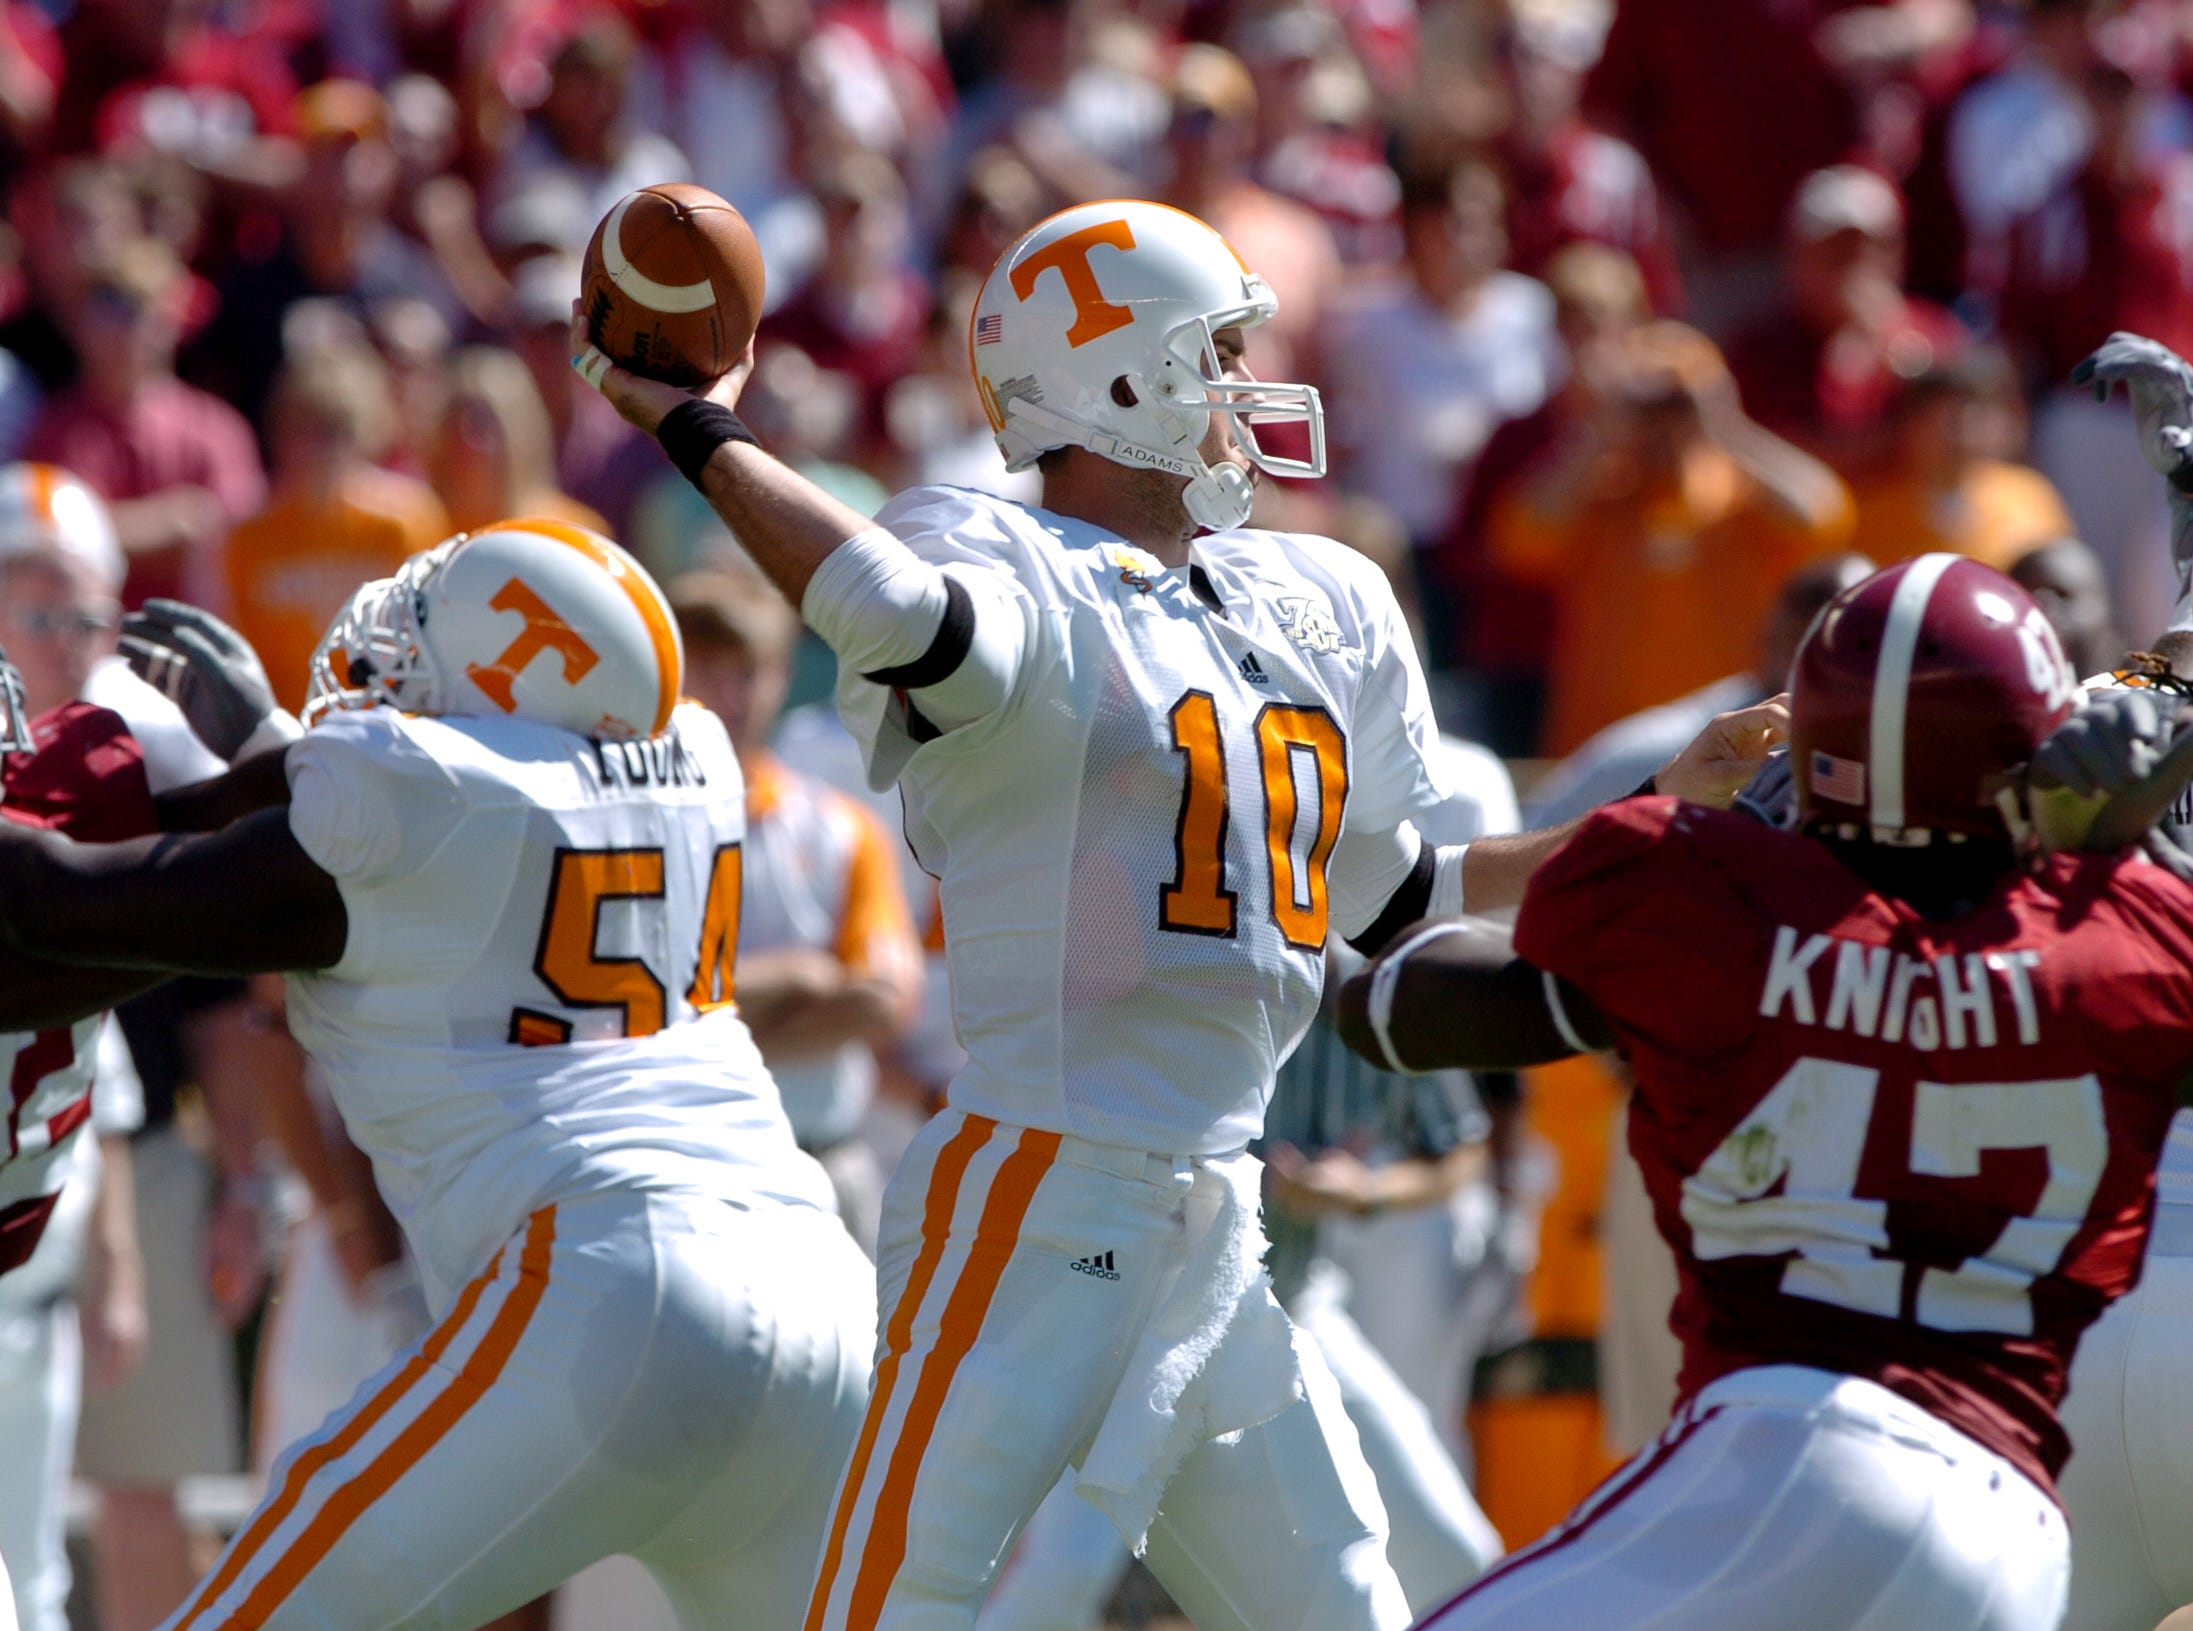 Tennessee quarterback Erik Ainge looks downfield to pass against Alabama on Saturday in Tuscaloosa, Ala. Ainge was 22-of-35 passing for 243 yards but the Tide rolled over the Vols 41-17, dropping them to 4-3 for the season.